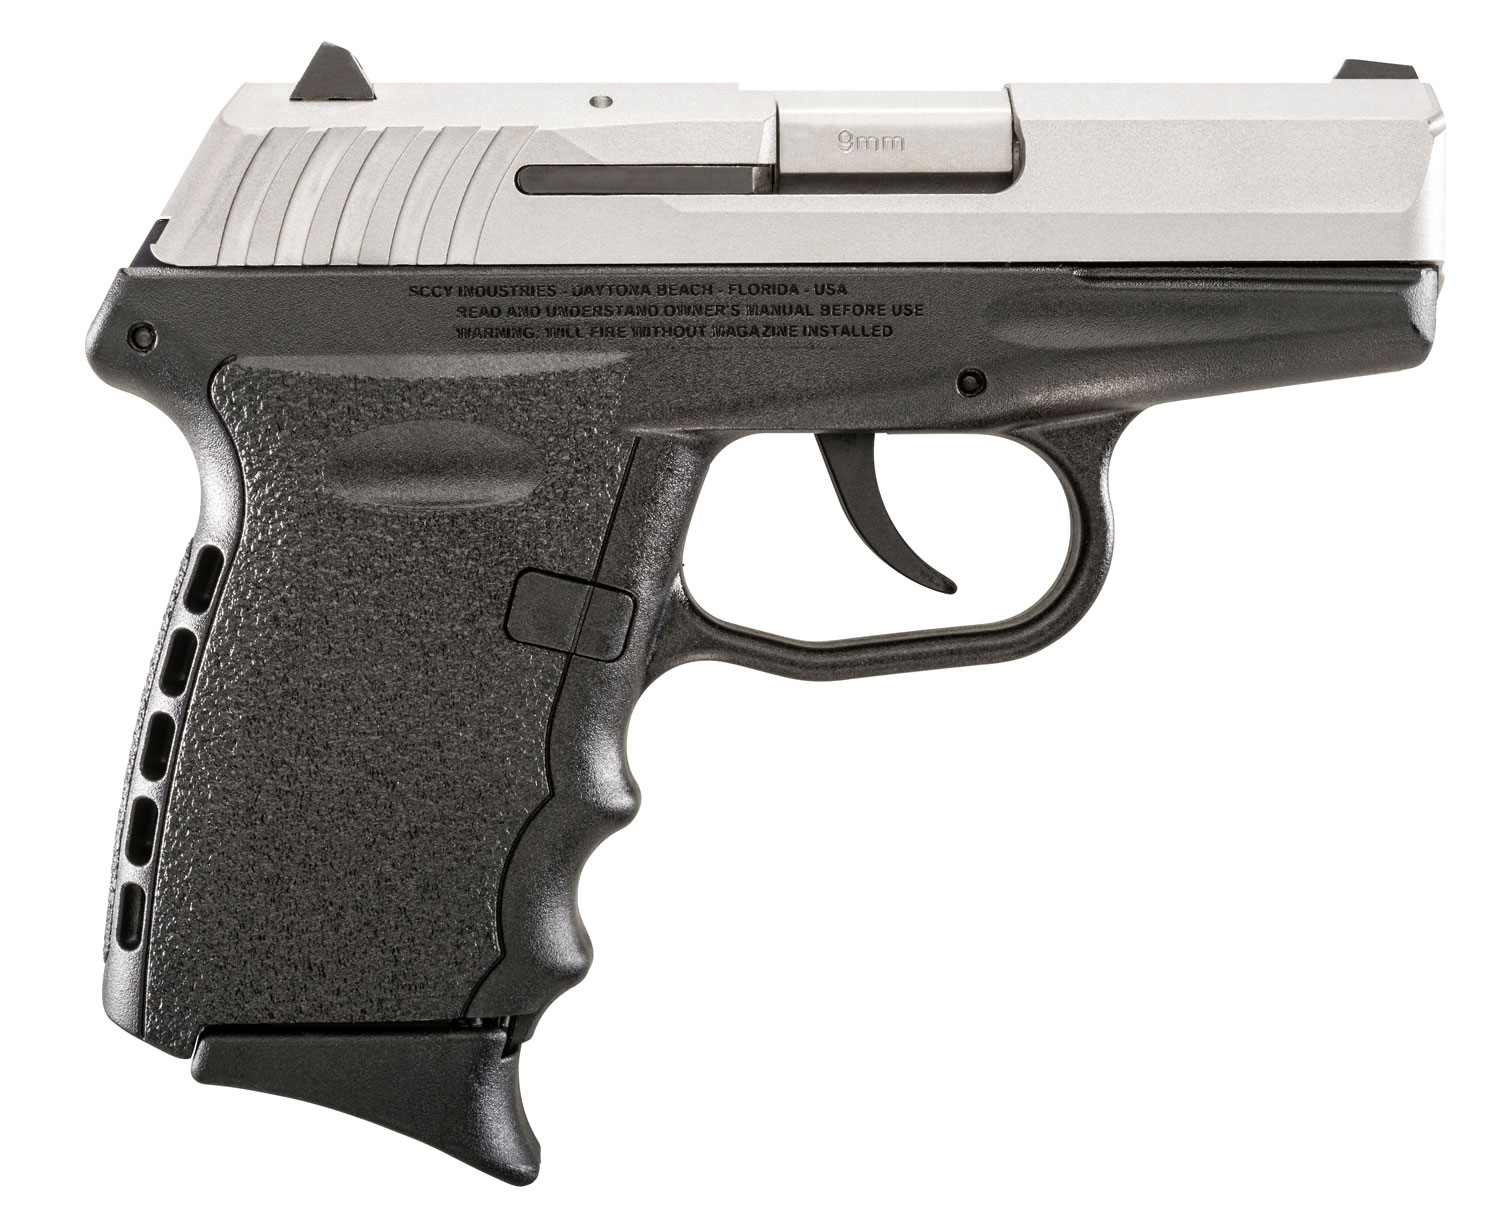 SCCY Industries CPX2TT CPX-2 Double 9mm 3.1